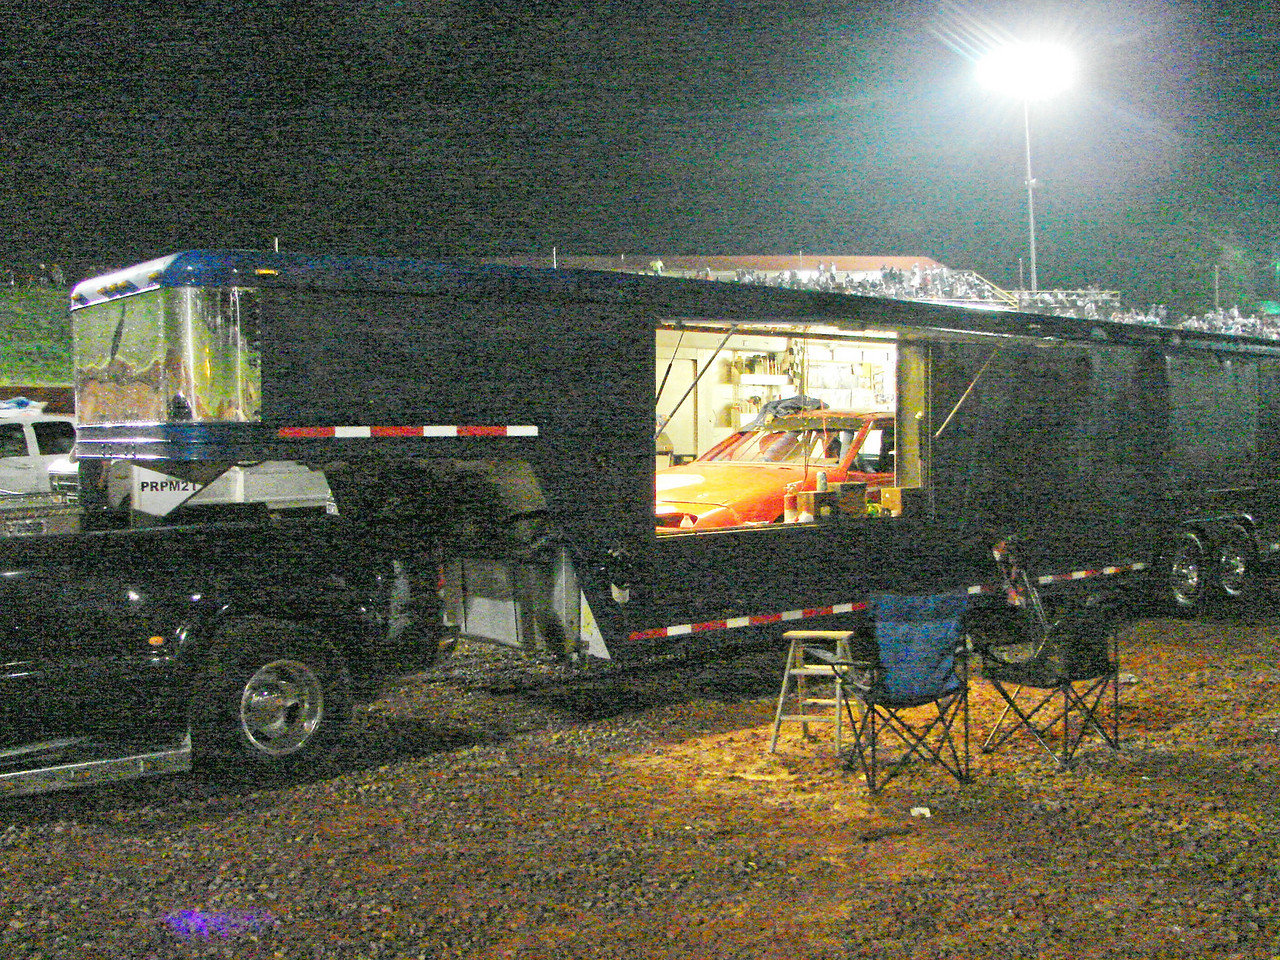 this open sided trailer was used by Jeff Gordon when he first ran NASCAR